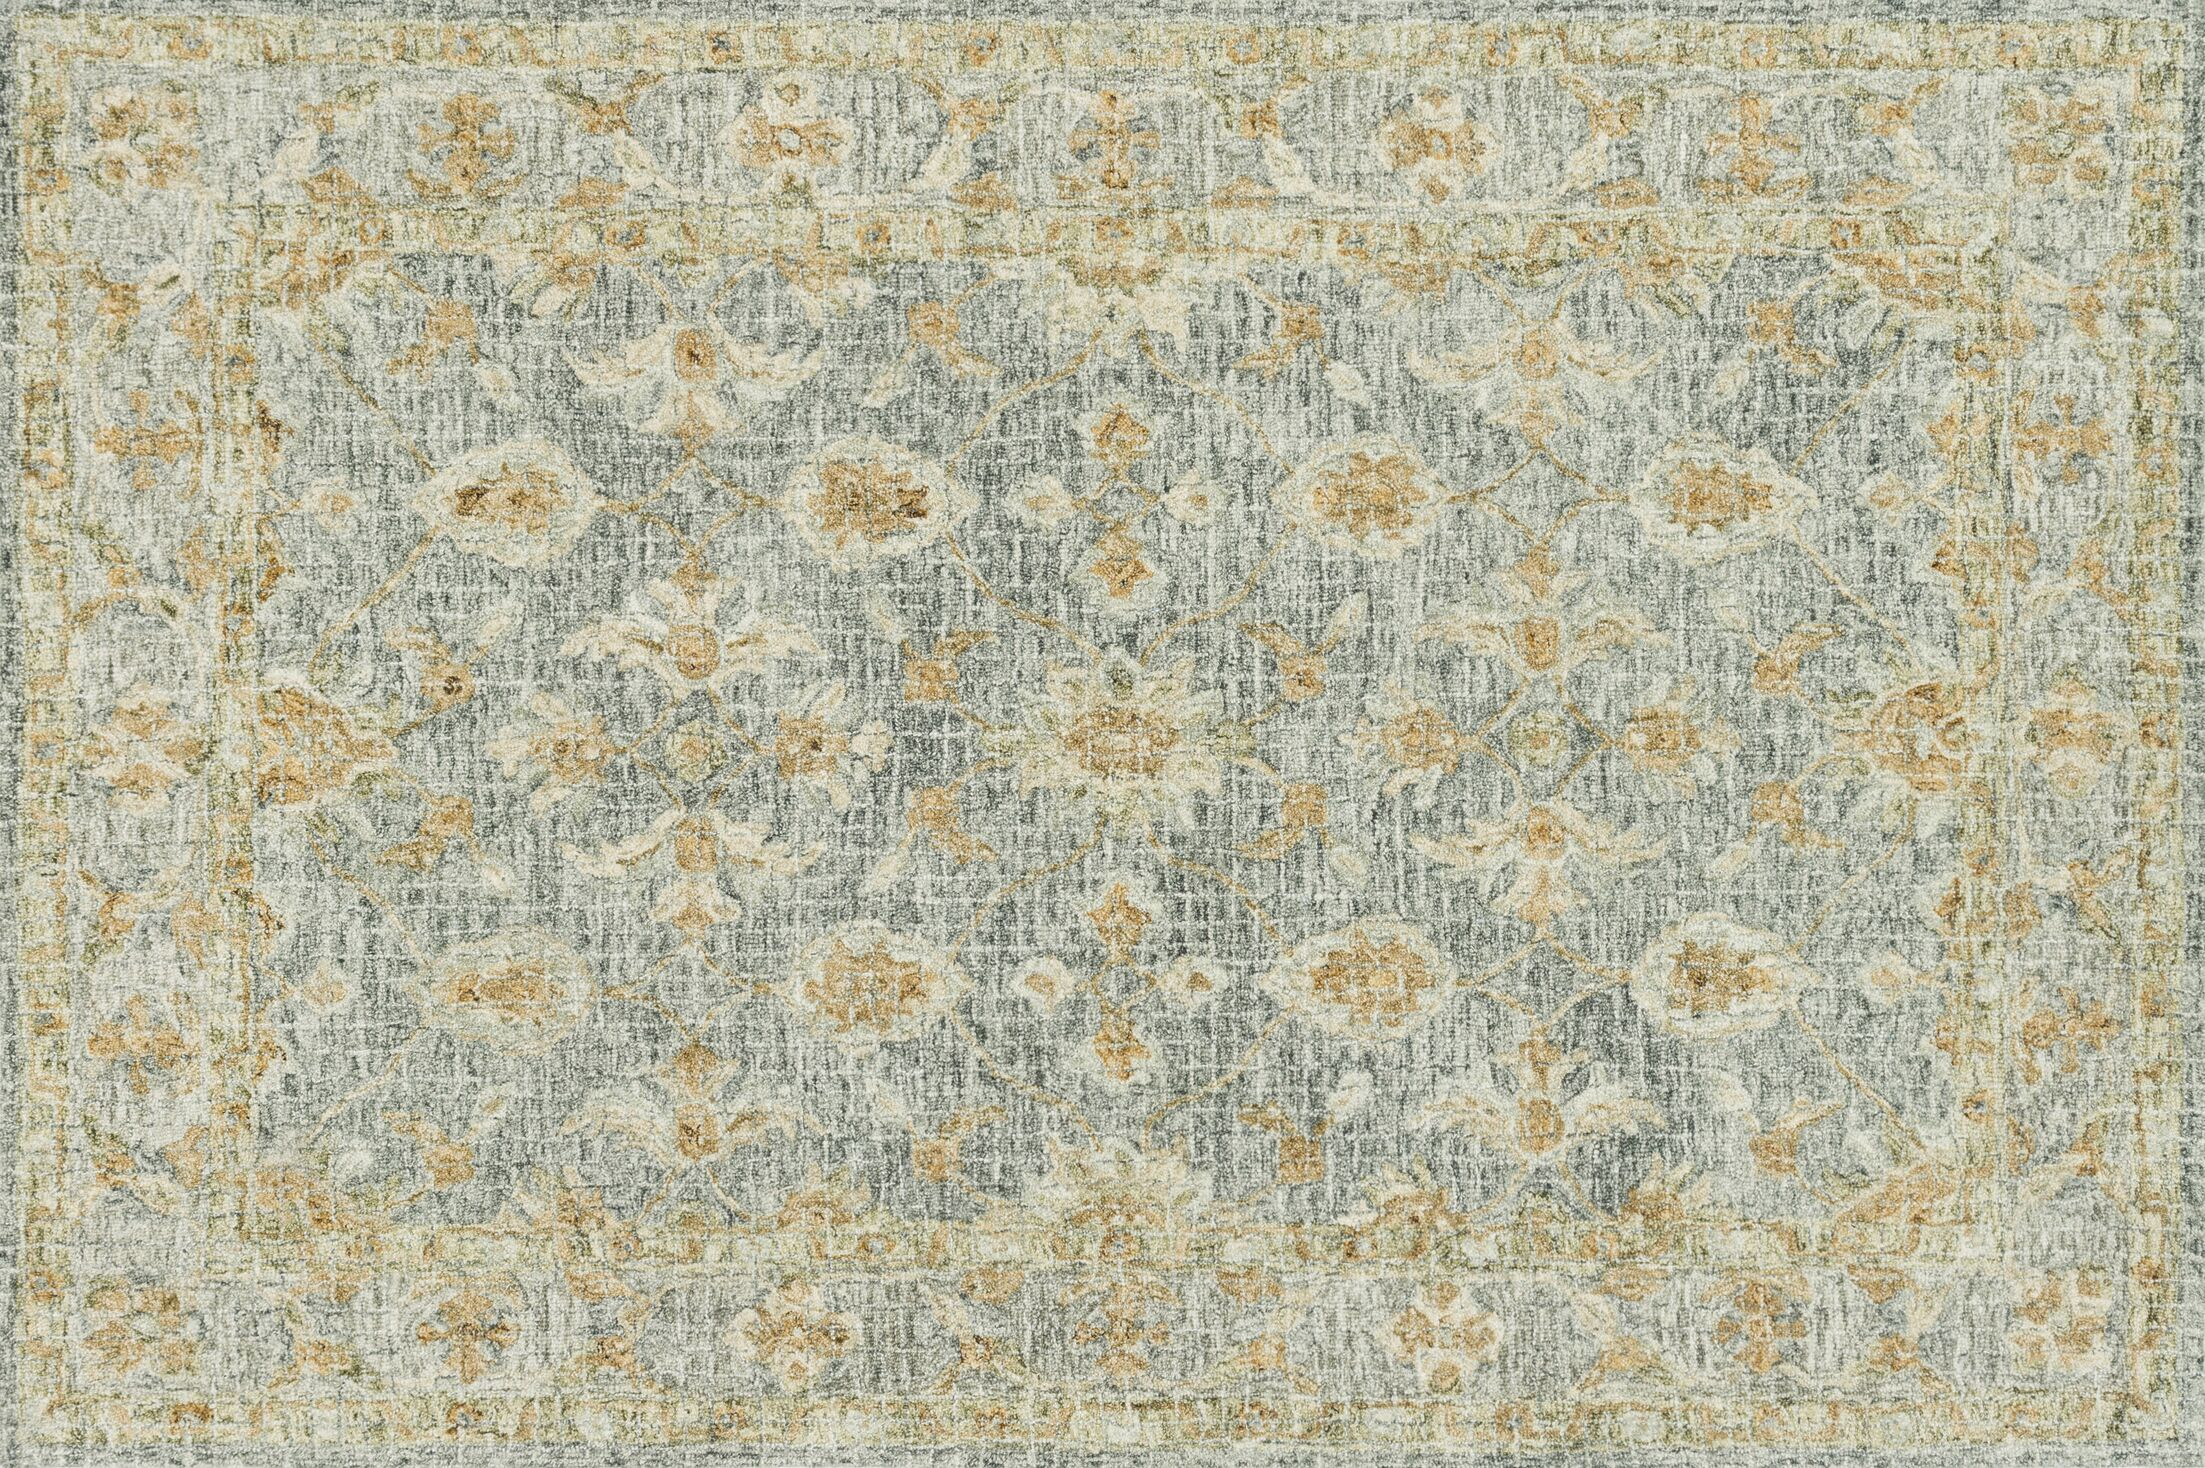 Fitzwater Hand-Hooked Wool Spa Area Rug Rug Size: Rectangle 3'6